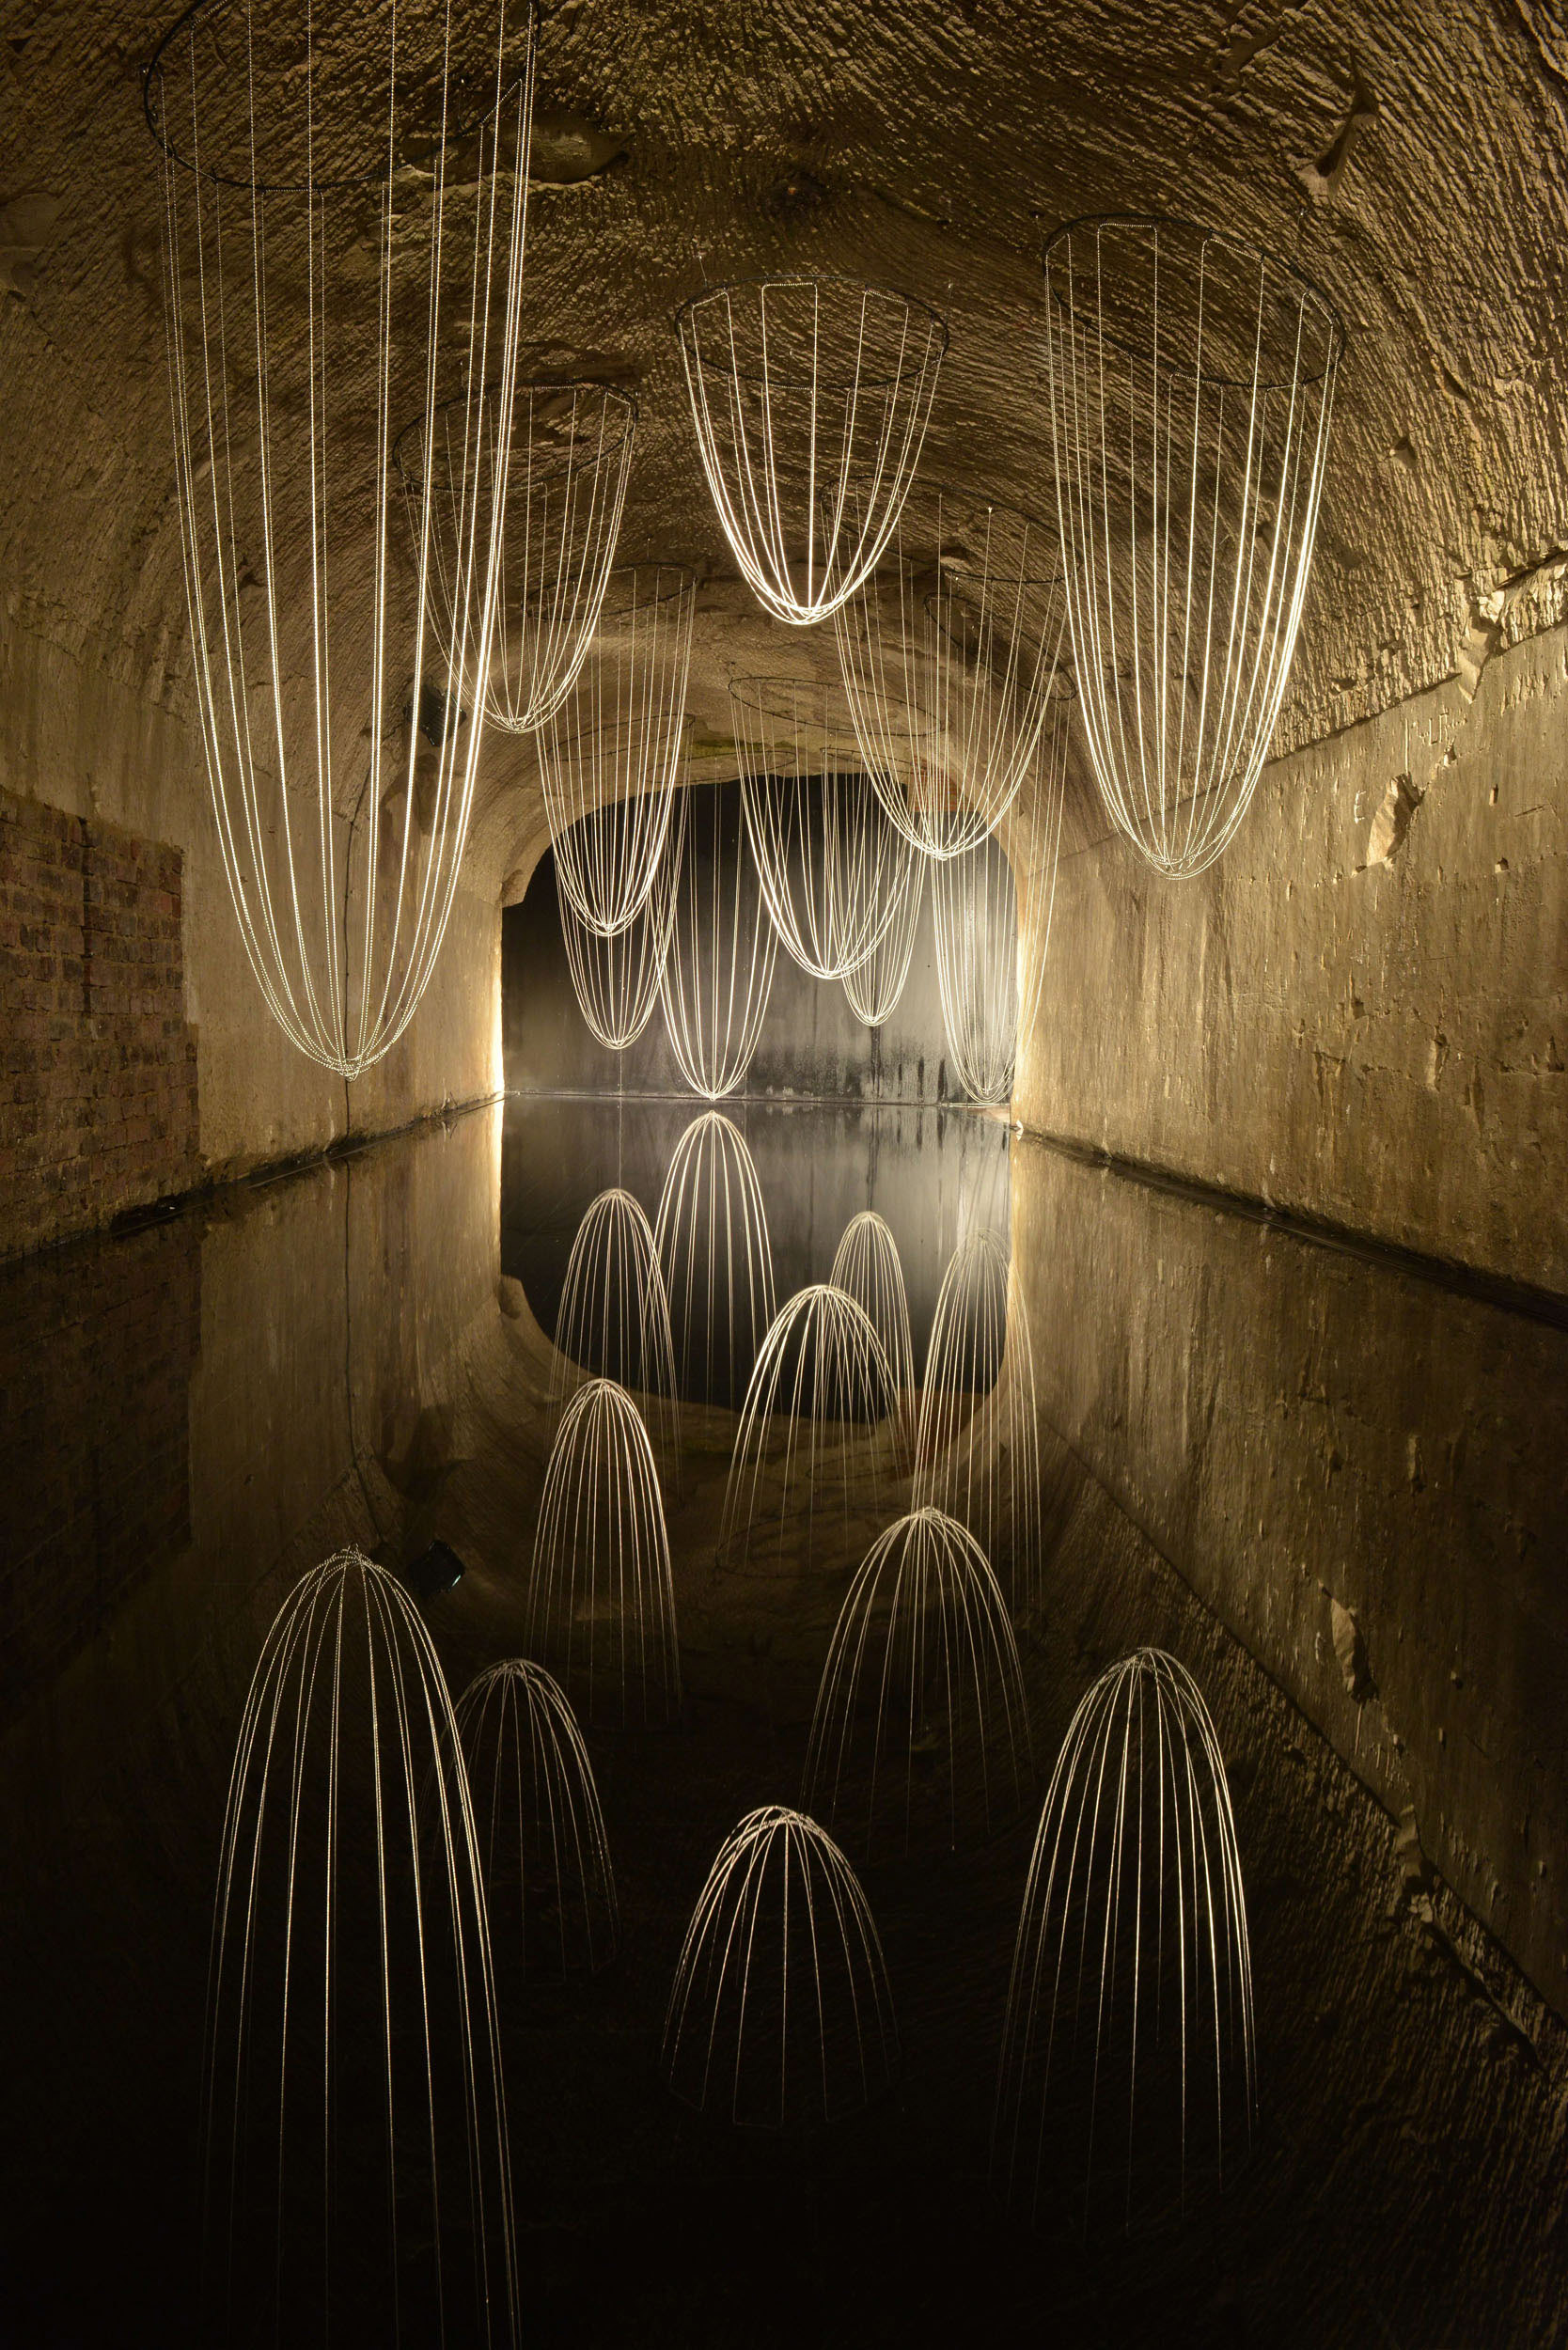 Lost Time is an installation of strung beads that are reflected over a shallow body of still water. The weight of the suspended beads creates natural drapes that, when reflected in the surface of the water, appear as a landscape of towering structures.